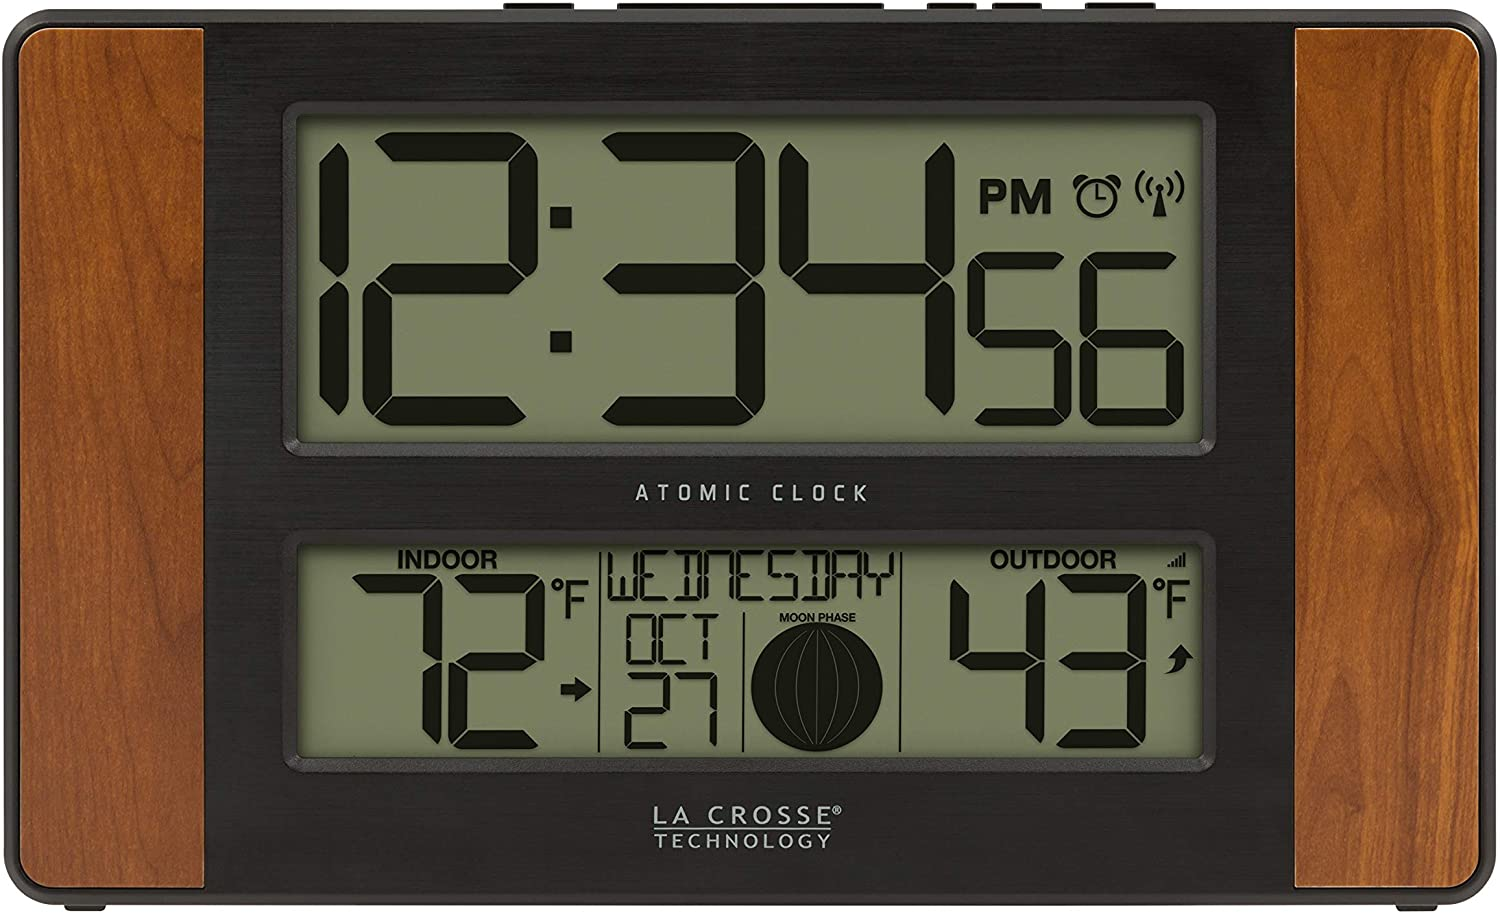 La Crosse Technology 513-1417CH-INT Atomic Digital Clock with Temperature and Moon Phase